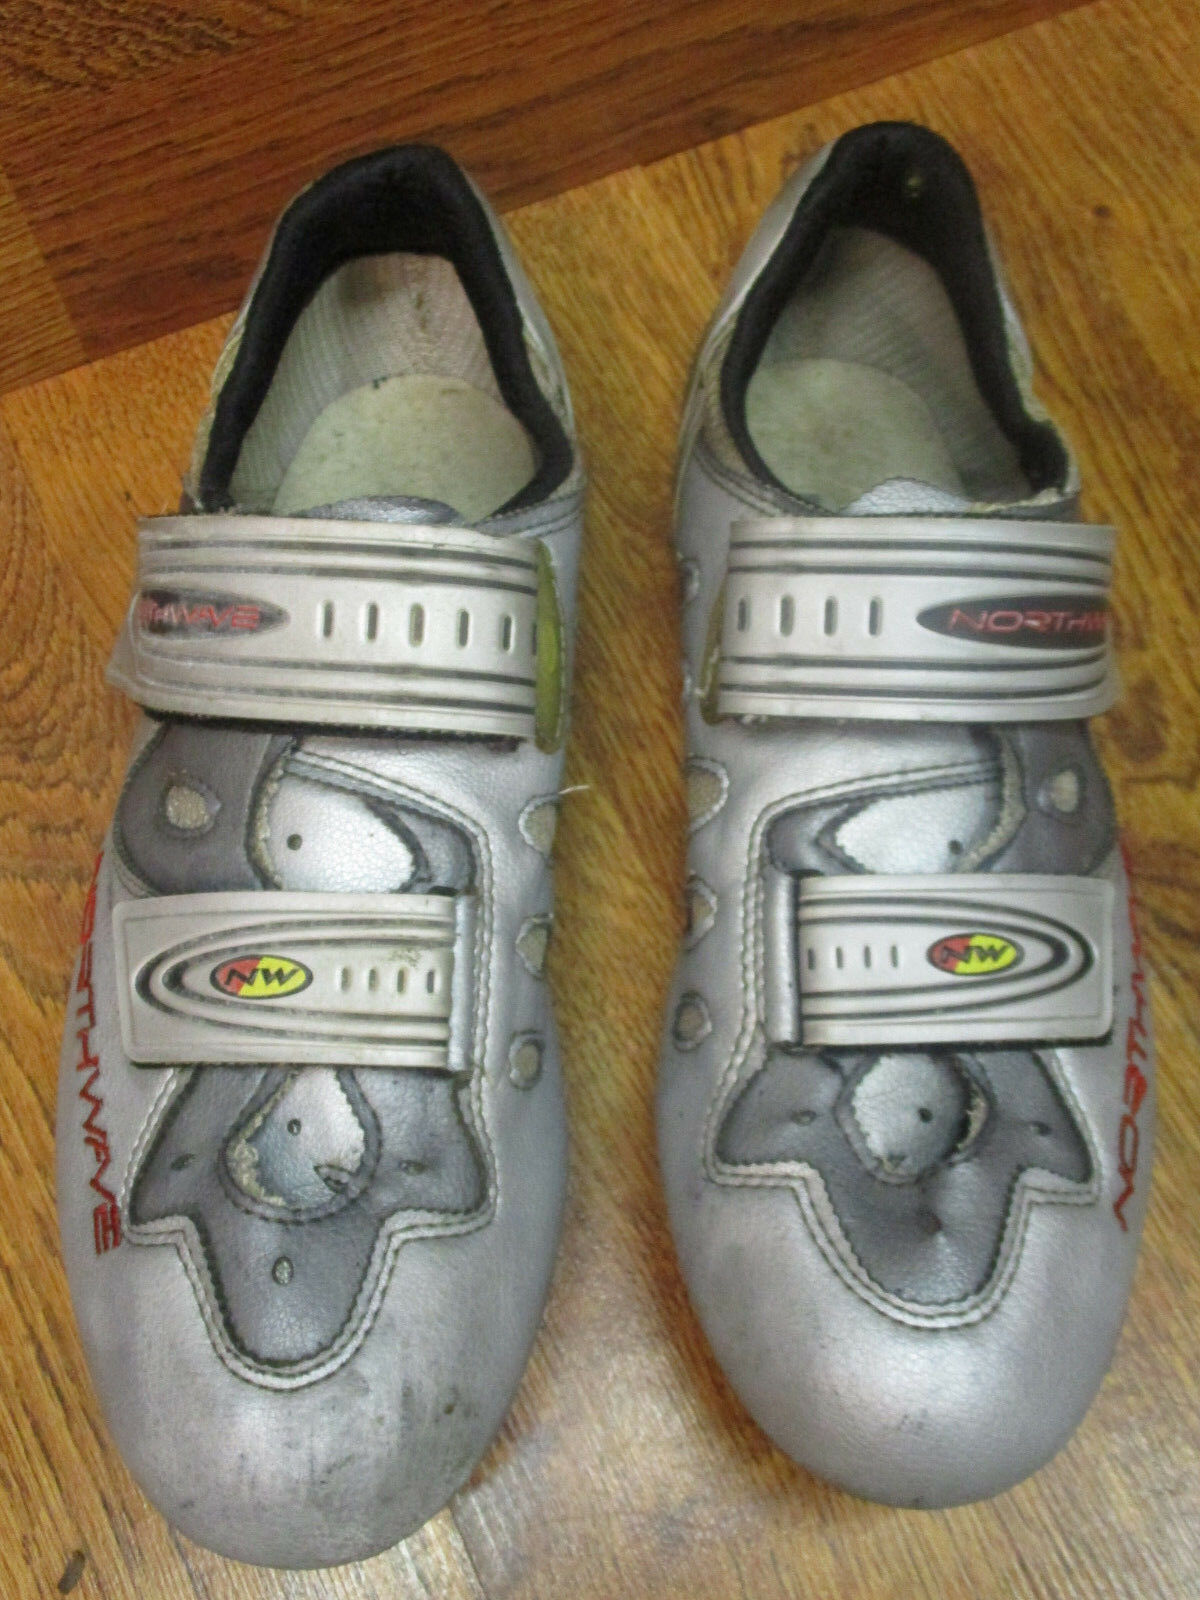 VINTAGE NORTHWAVE CARBON ROAD CYCLING SHOES EURO 43 US 10